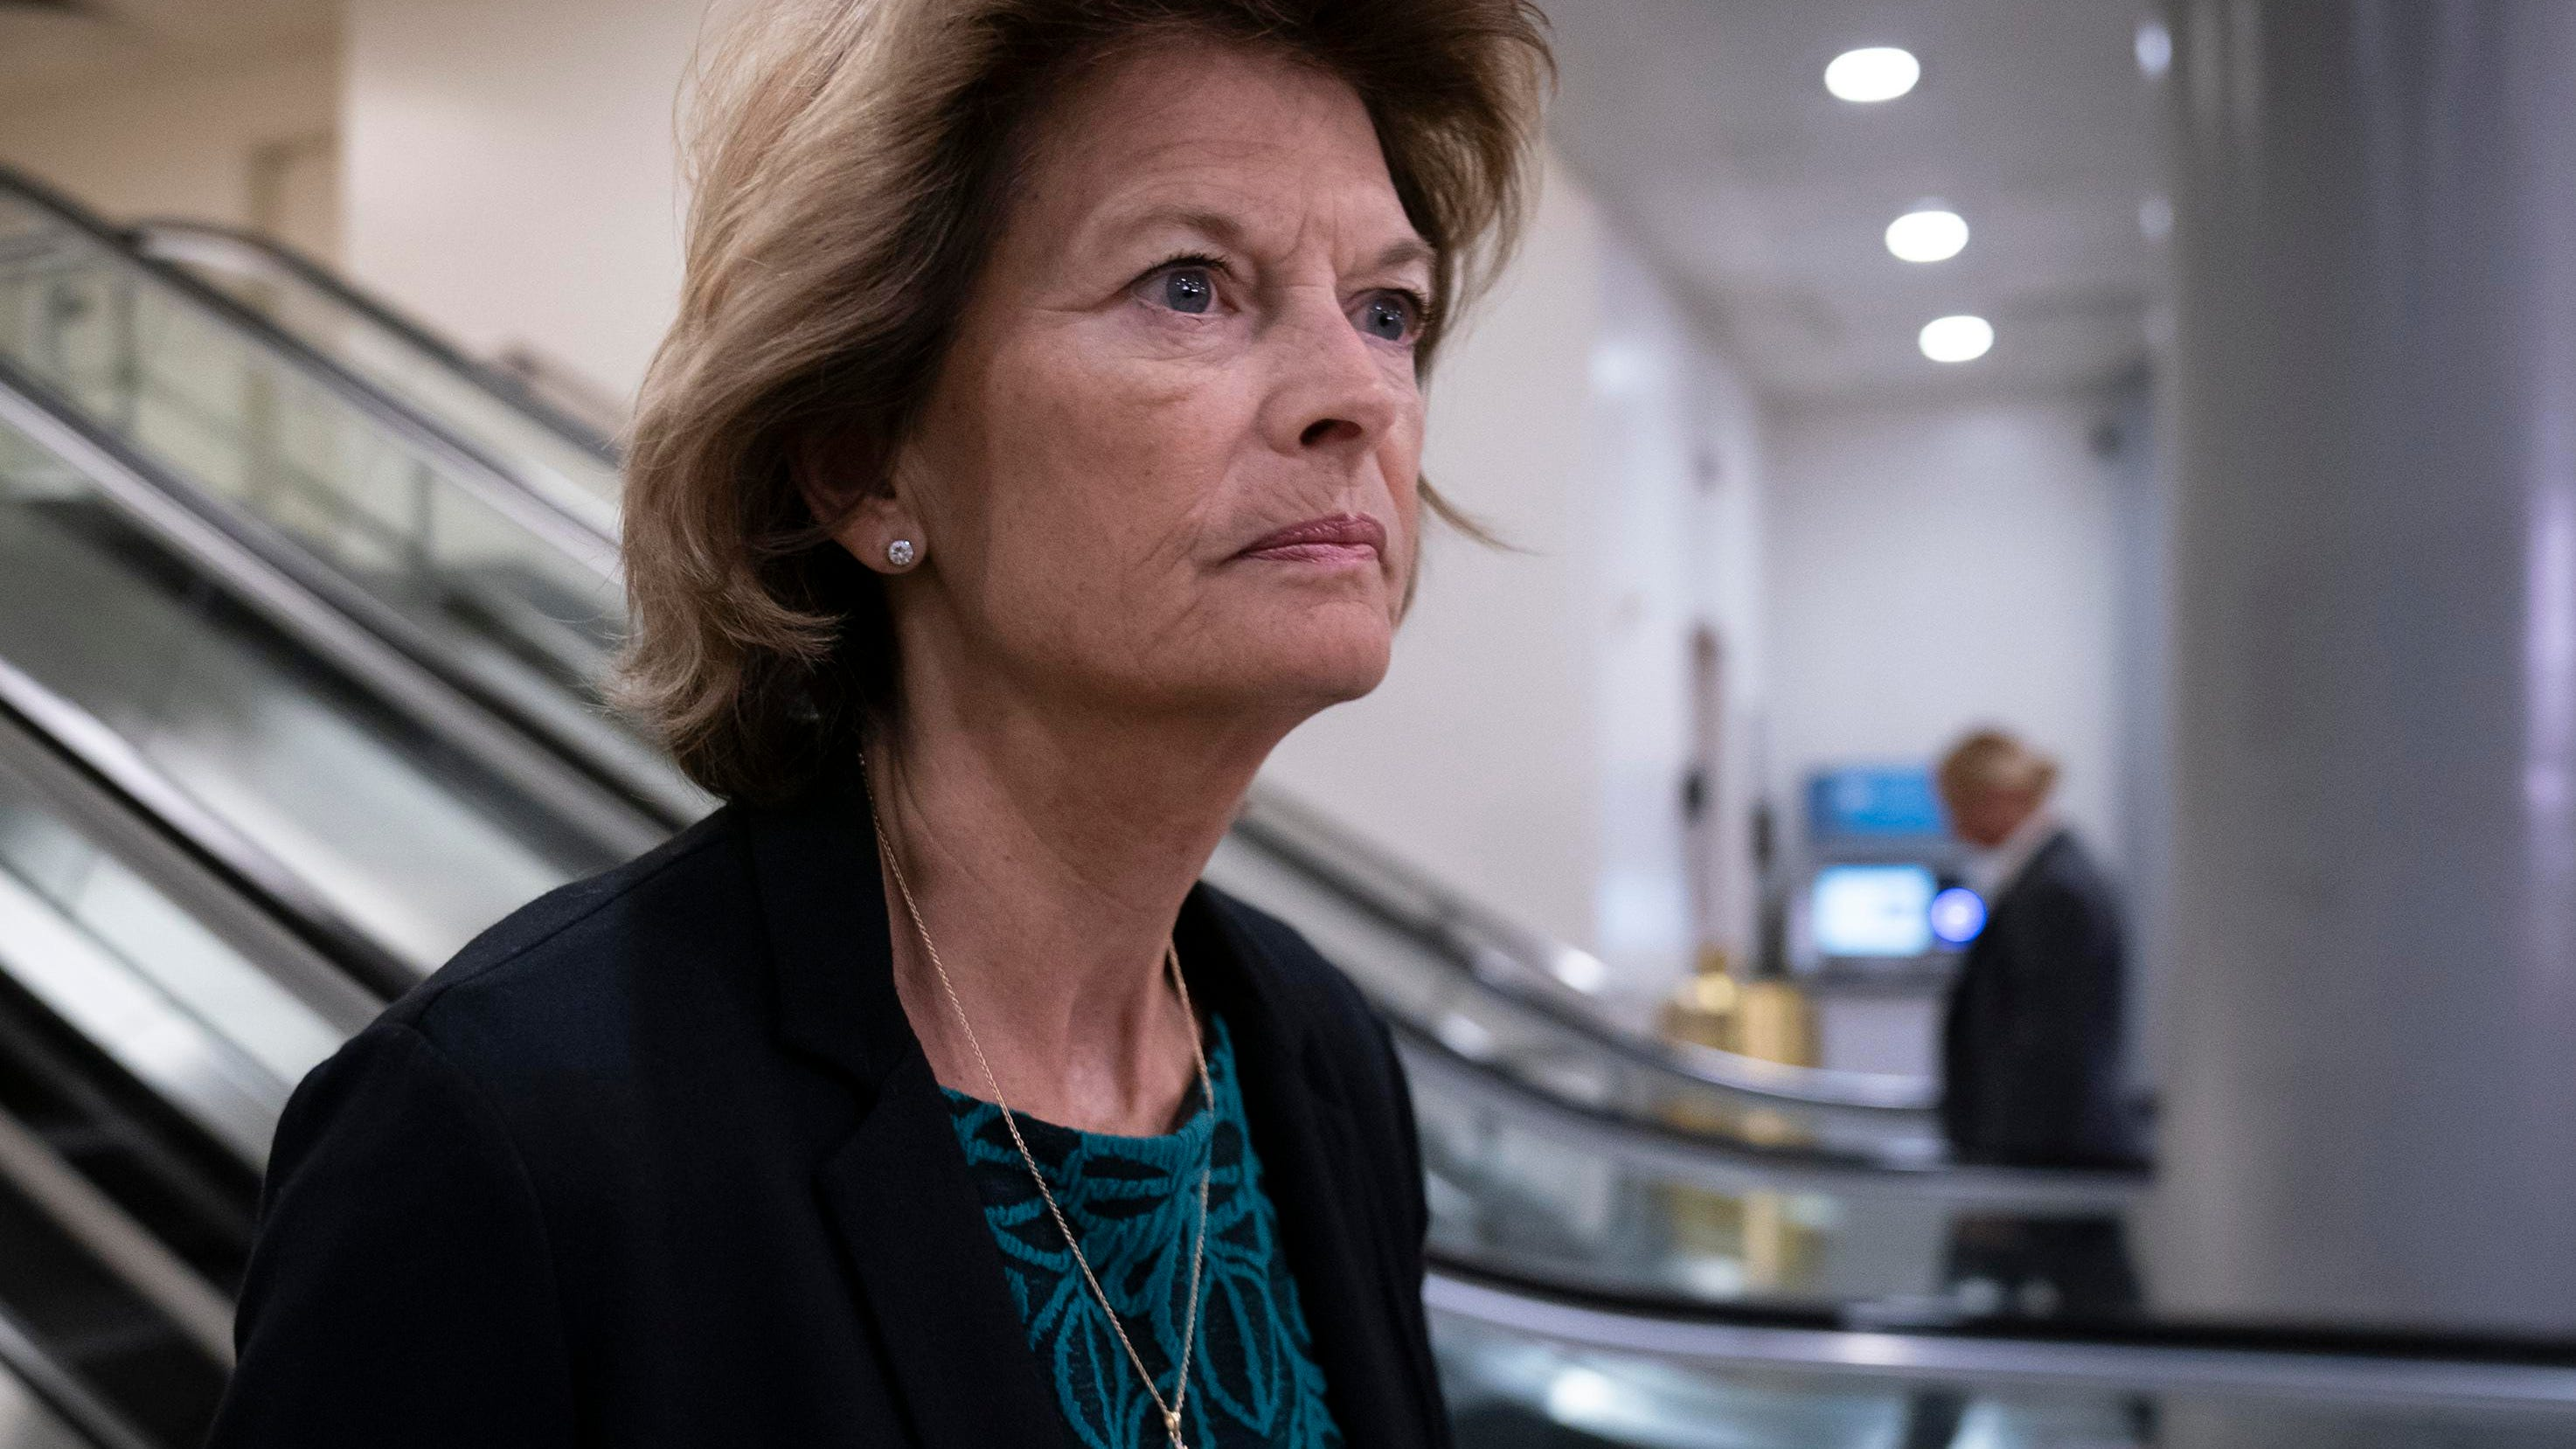 Sen. Lisa Murkowski, R-Alaska, was the target of a man's alleged threat to hire an assassin, according to court documents unsealed Wednesday.